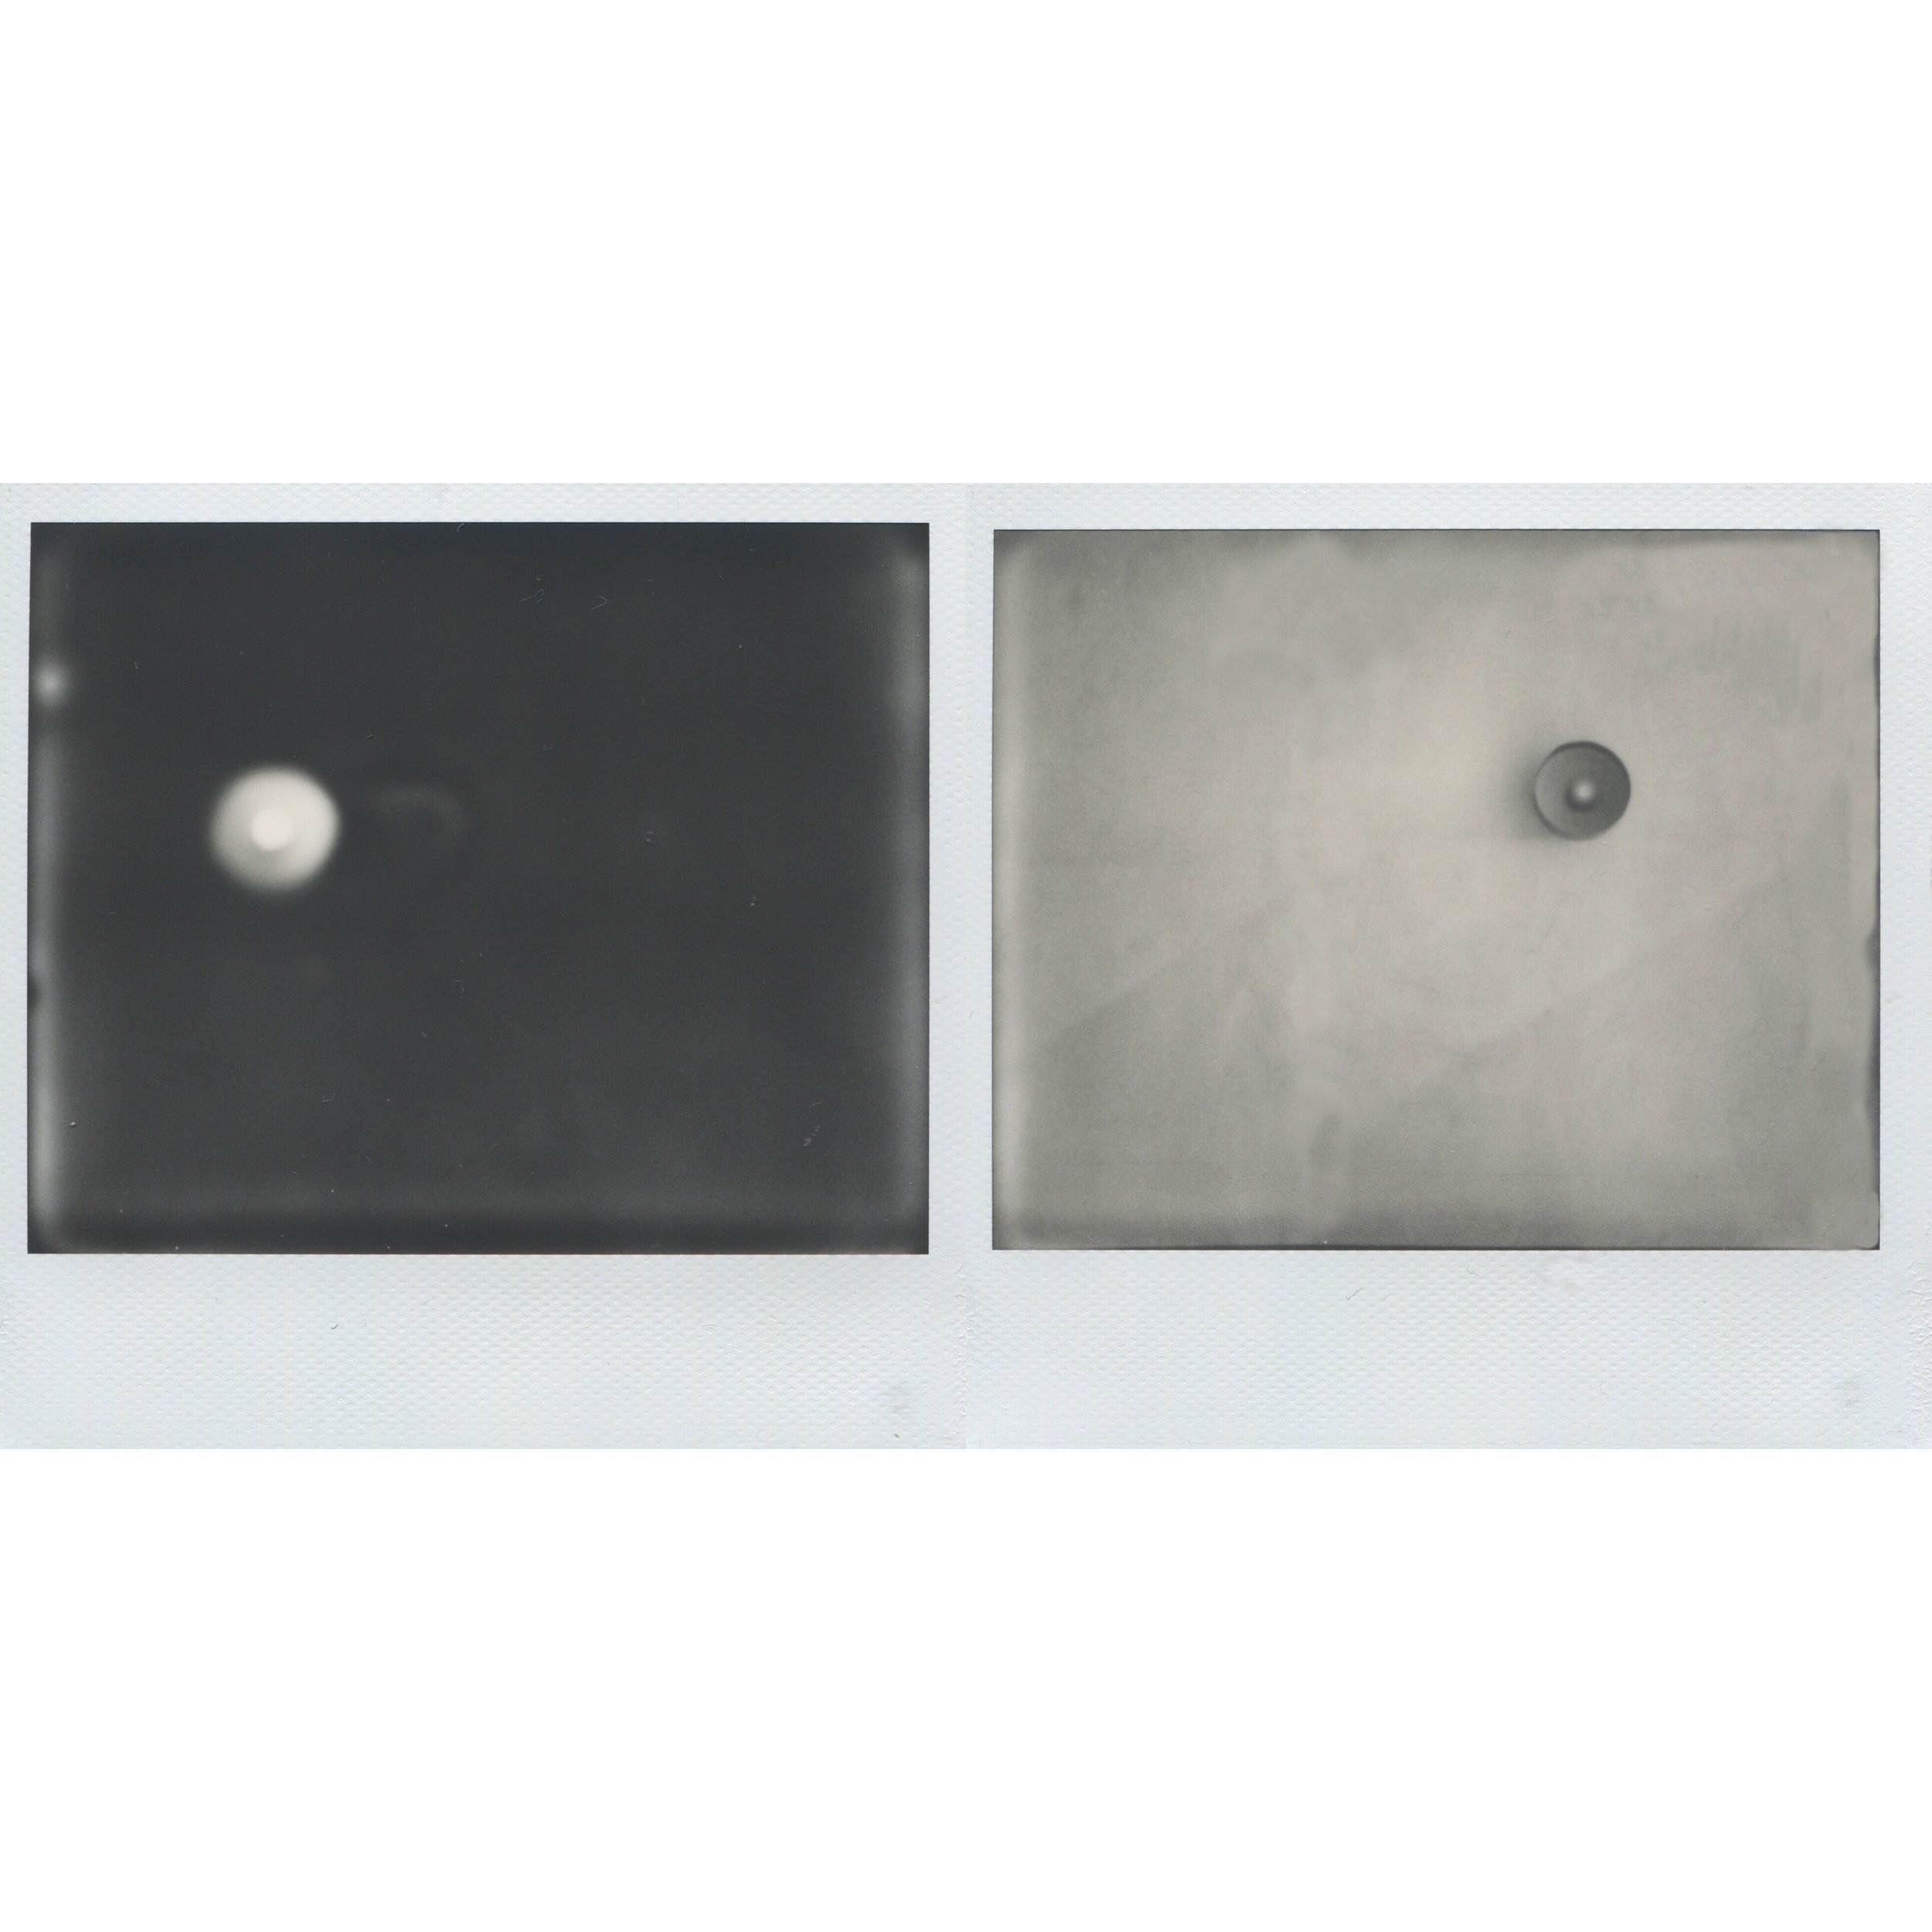 Tealight Candles | Spectra | Impossible Project Black and White Spectra | Lucinda Nicholas